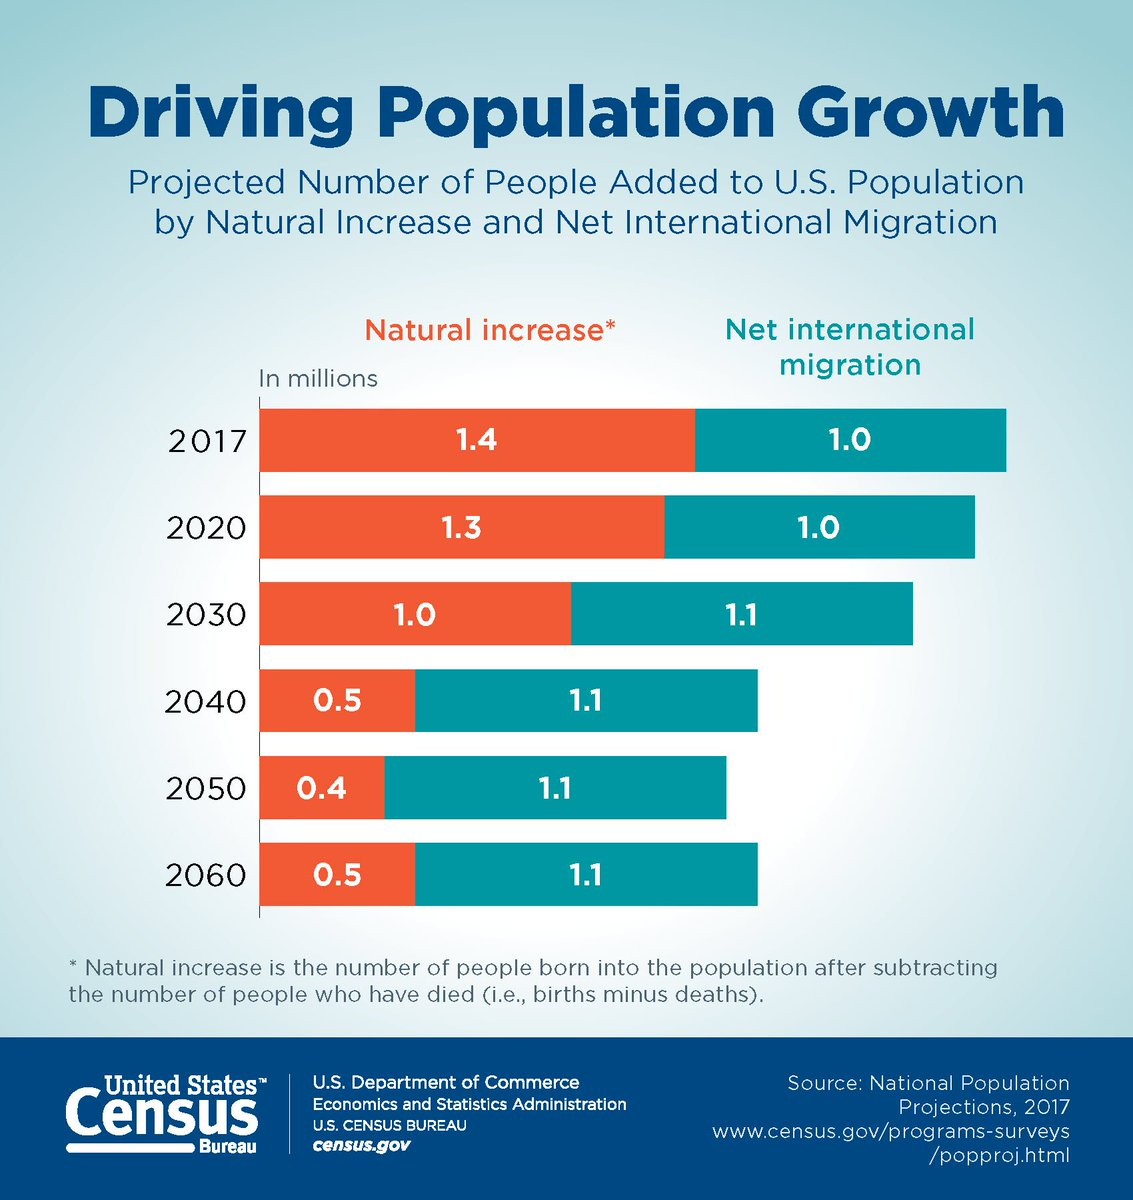 projected population growth by state Population projections population state projections are consistent with the national population projections births state trends in age-race- hispanic-specific fertility rates for states parallel projected national trends deaths state trends in age-sex-race-hispanic-specific survival rates for states parallel projected national trends net international migration.